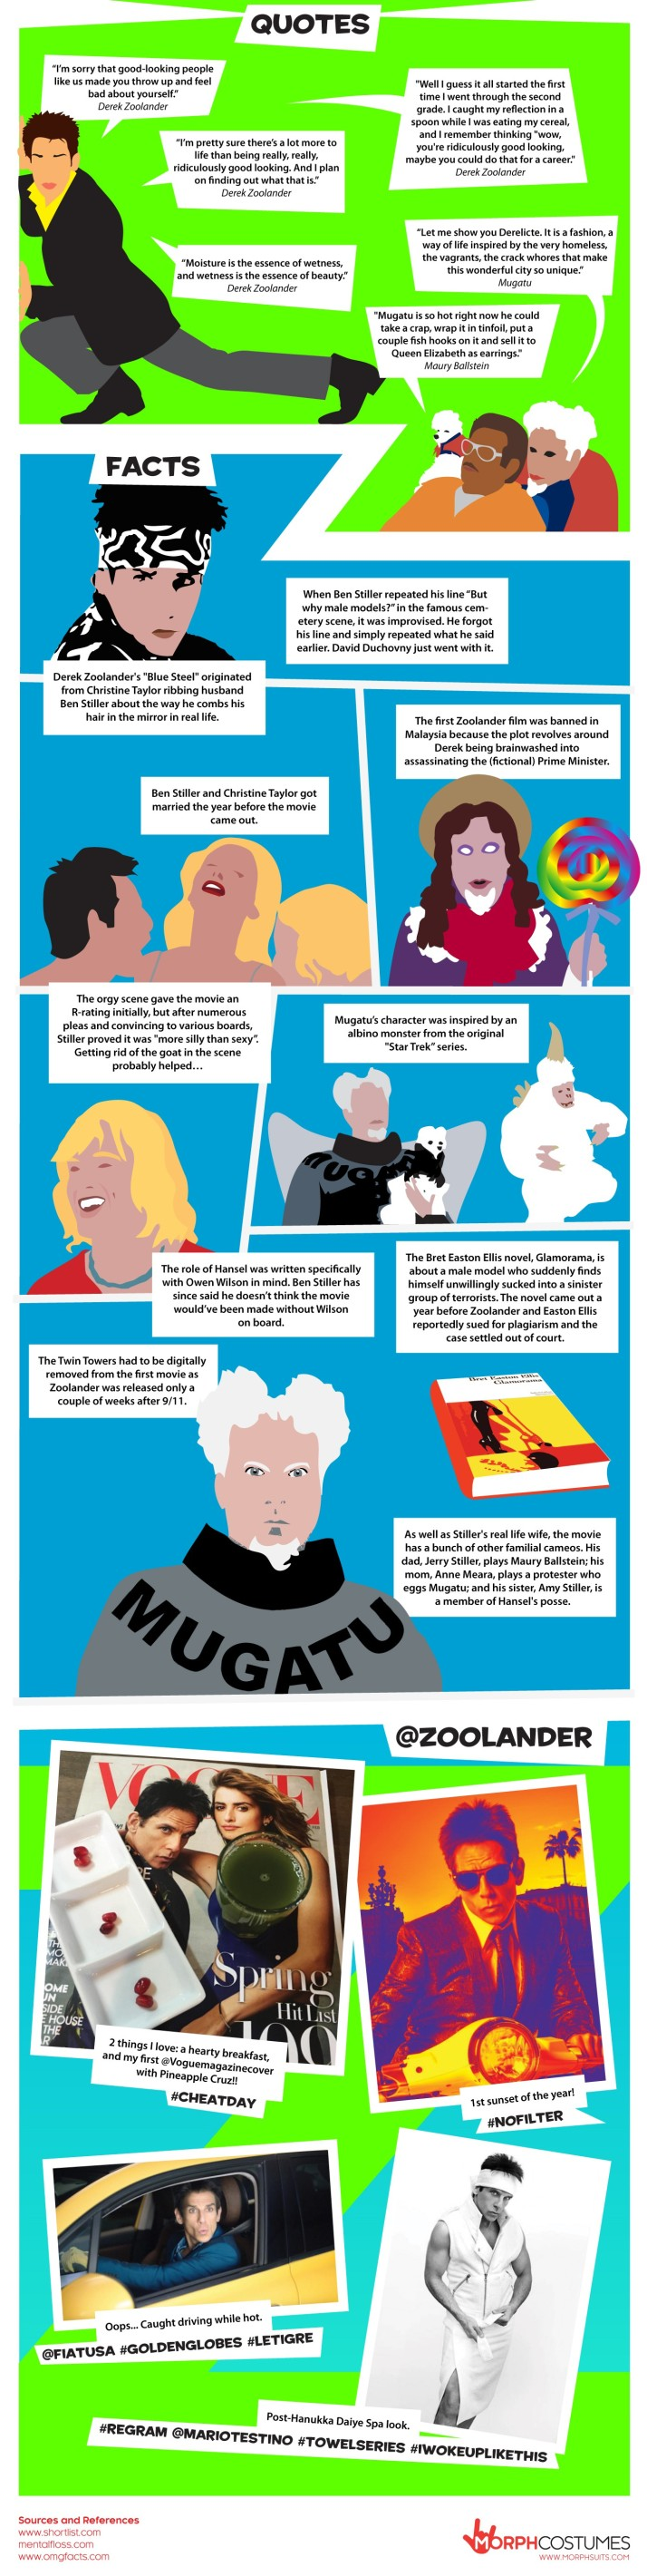 Zoolander Trivia You Need to Know Infographic